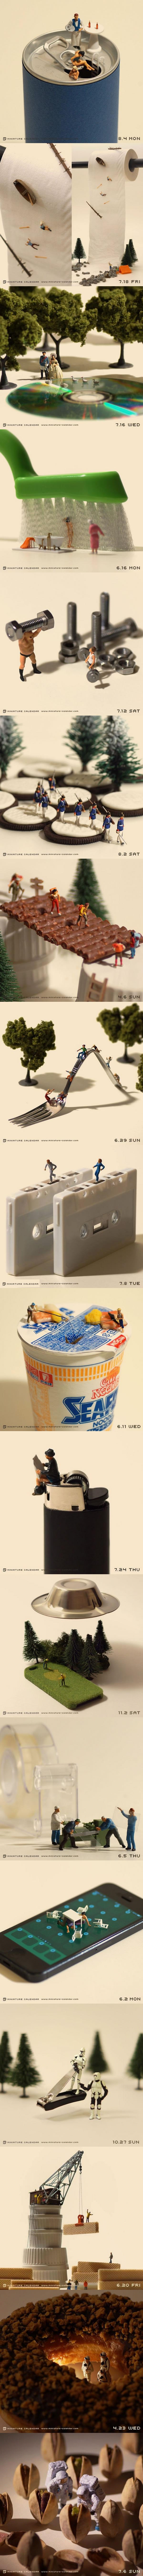 tanaka tatsuya combined little people and everyday objects to create an art like never seen before